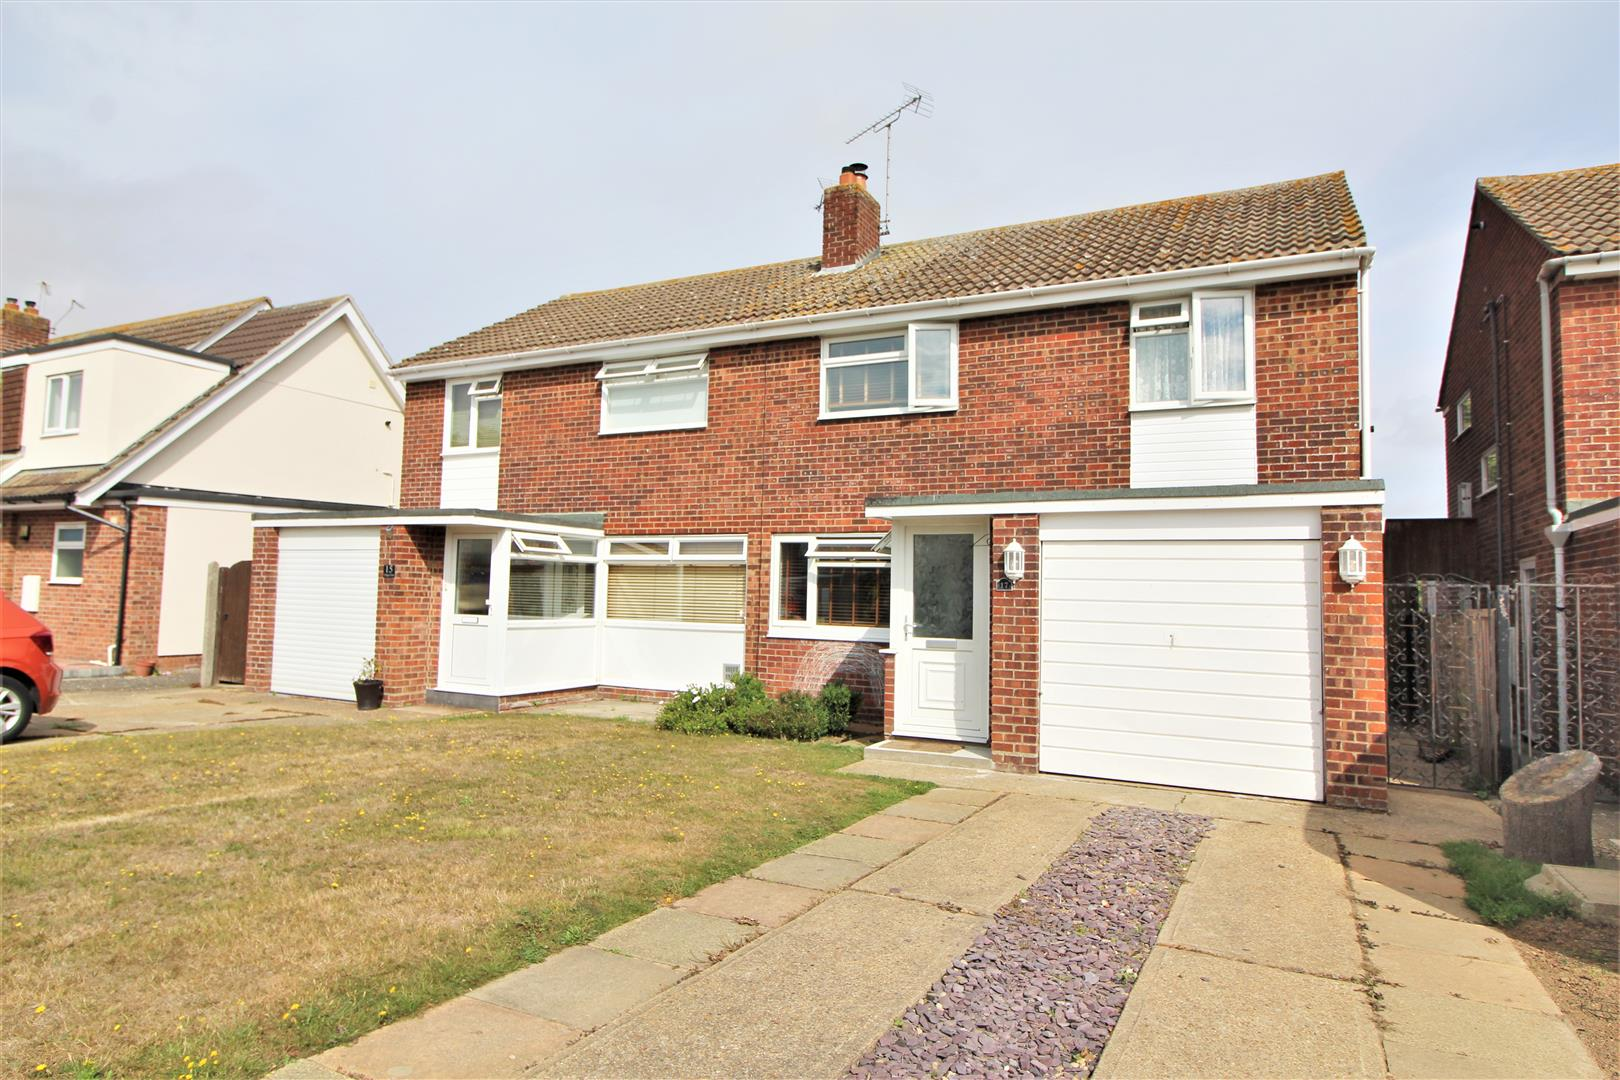 Village Close, Kirby Cross, Essex, CO13 0PF